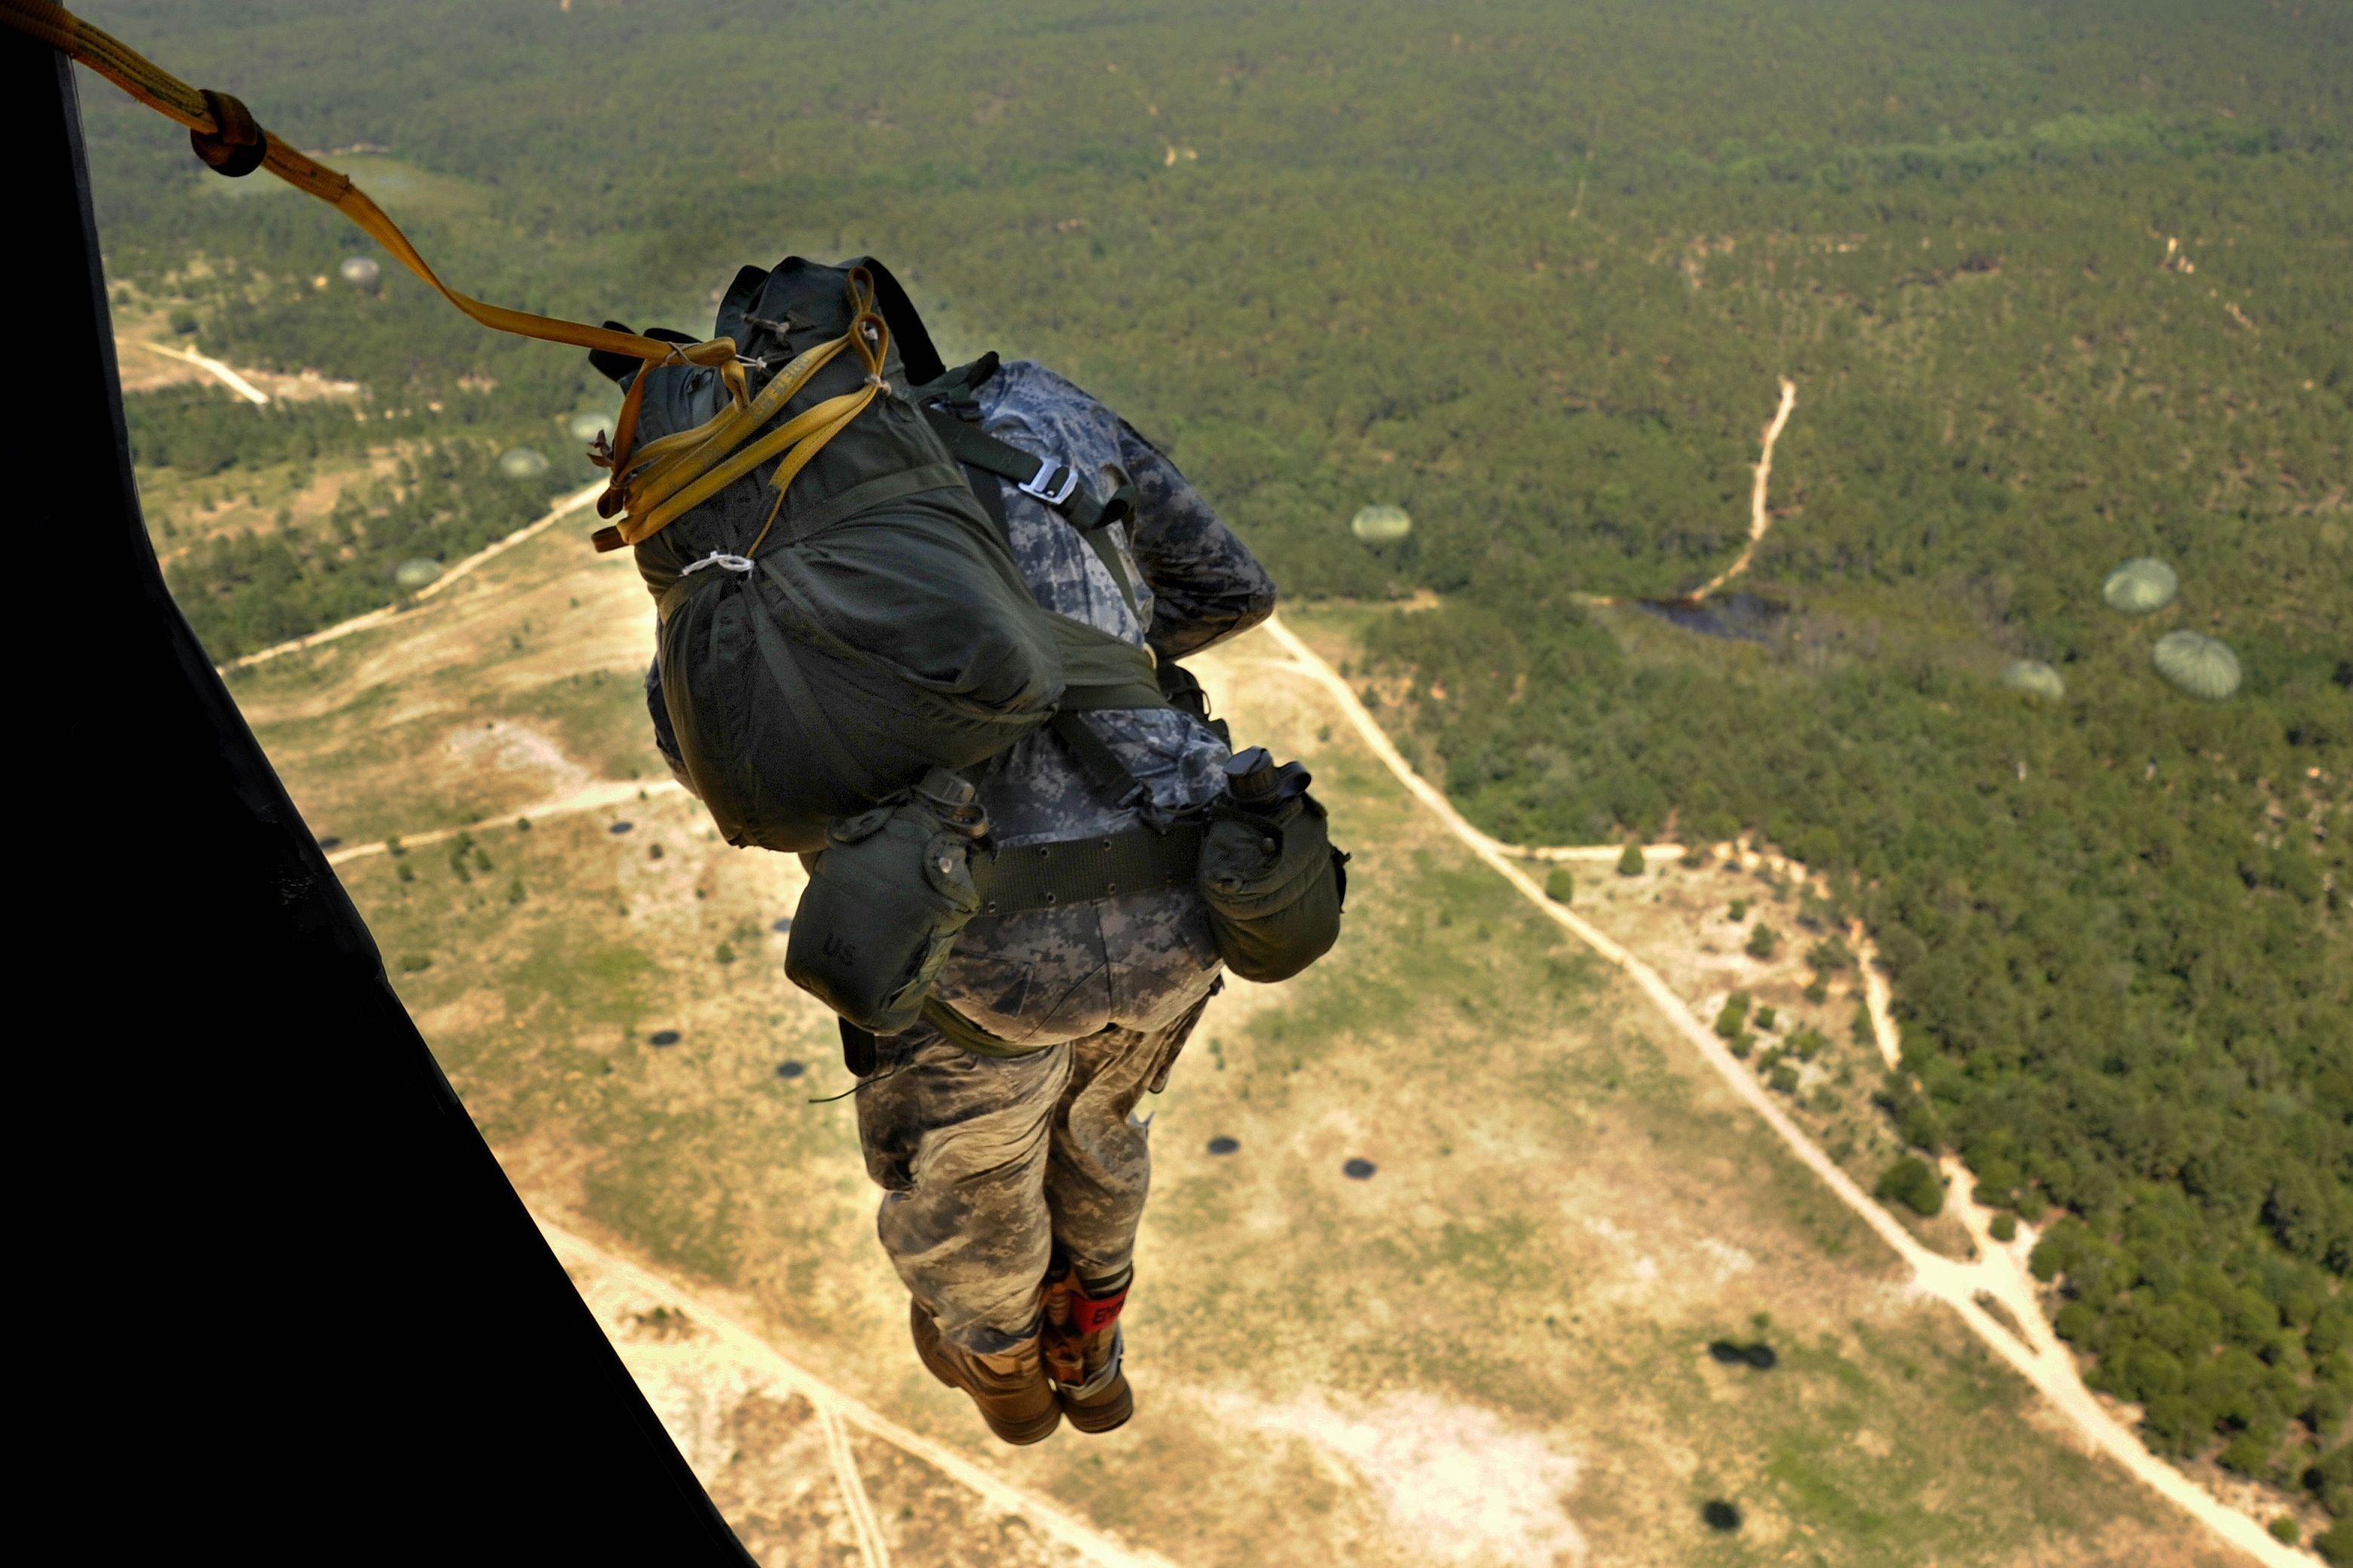 Army Airborne Wallpapers Hd Resolution Sdeerwallpaper Us